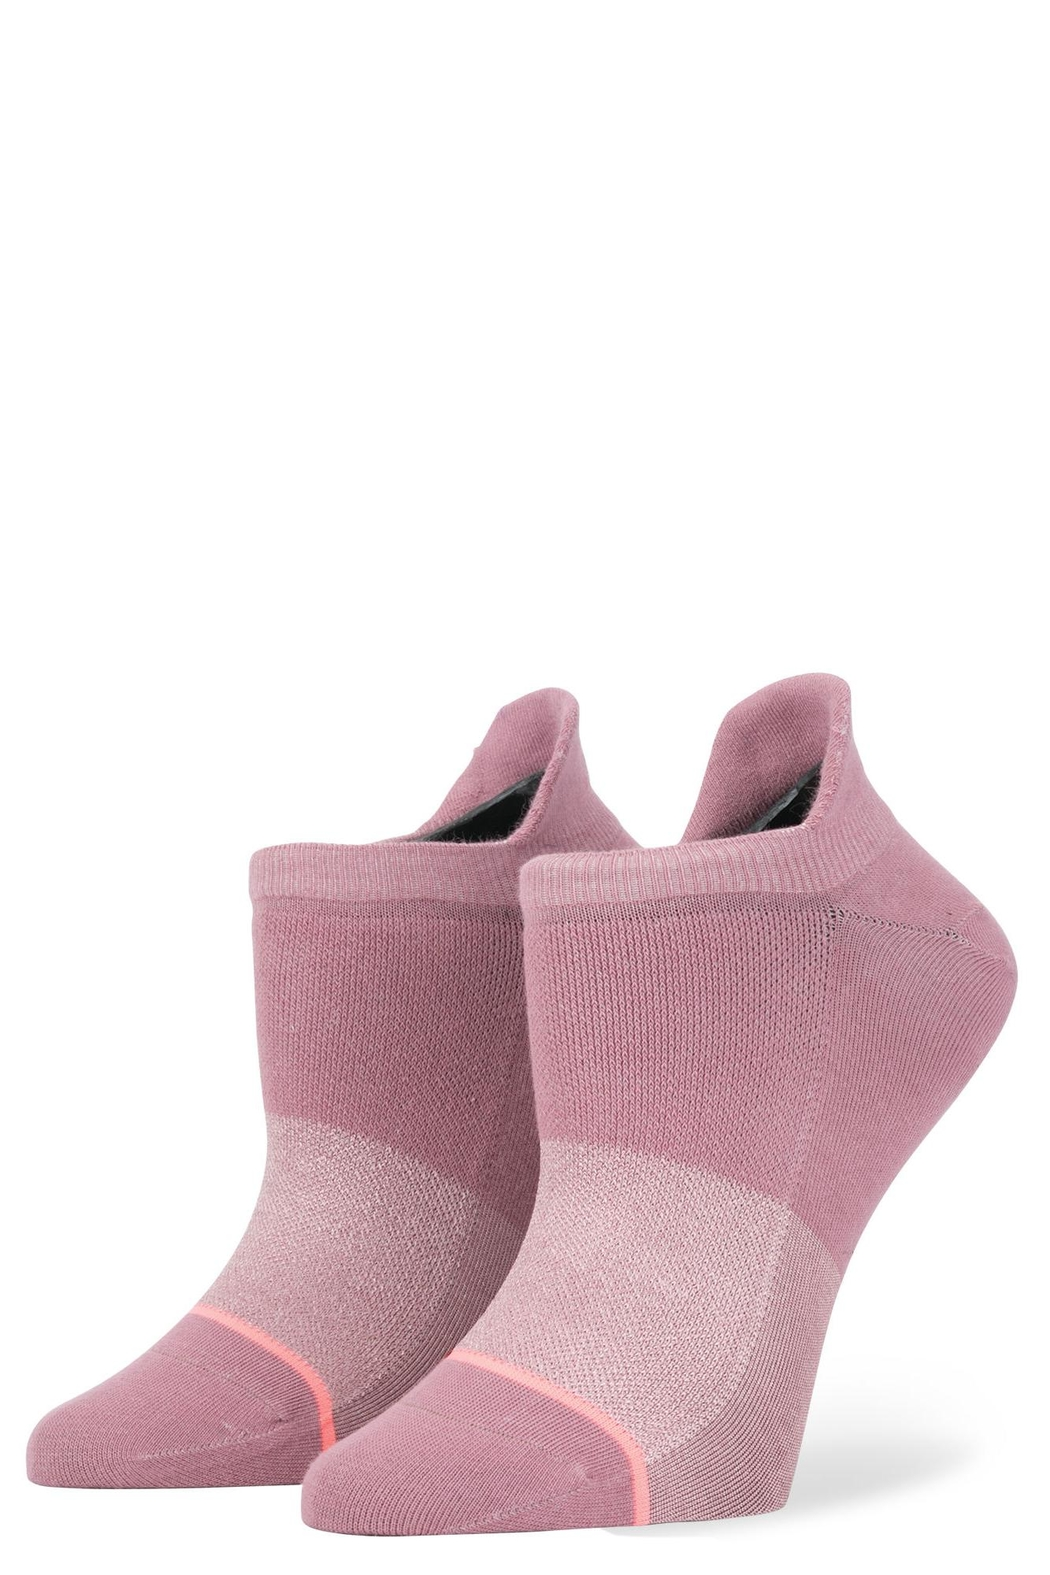 Stance Committed Purple Socks - Main Image